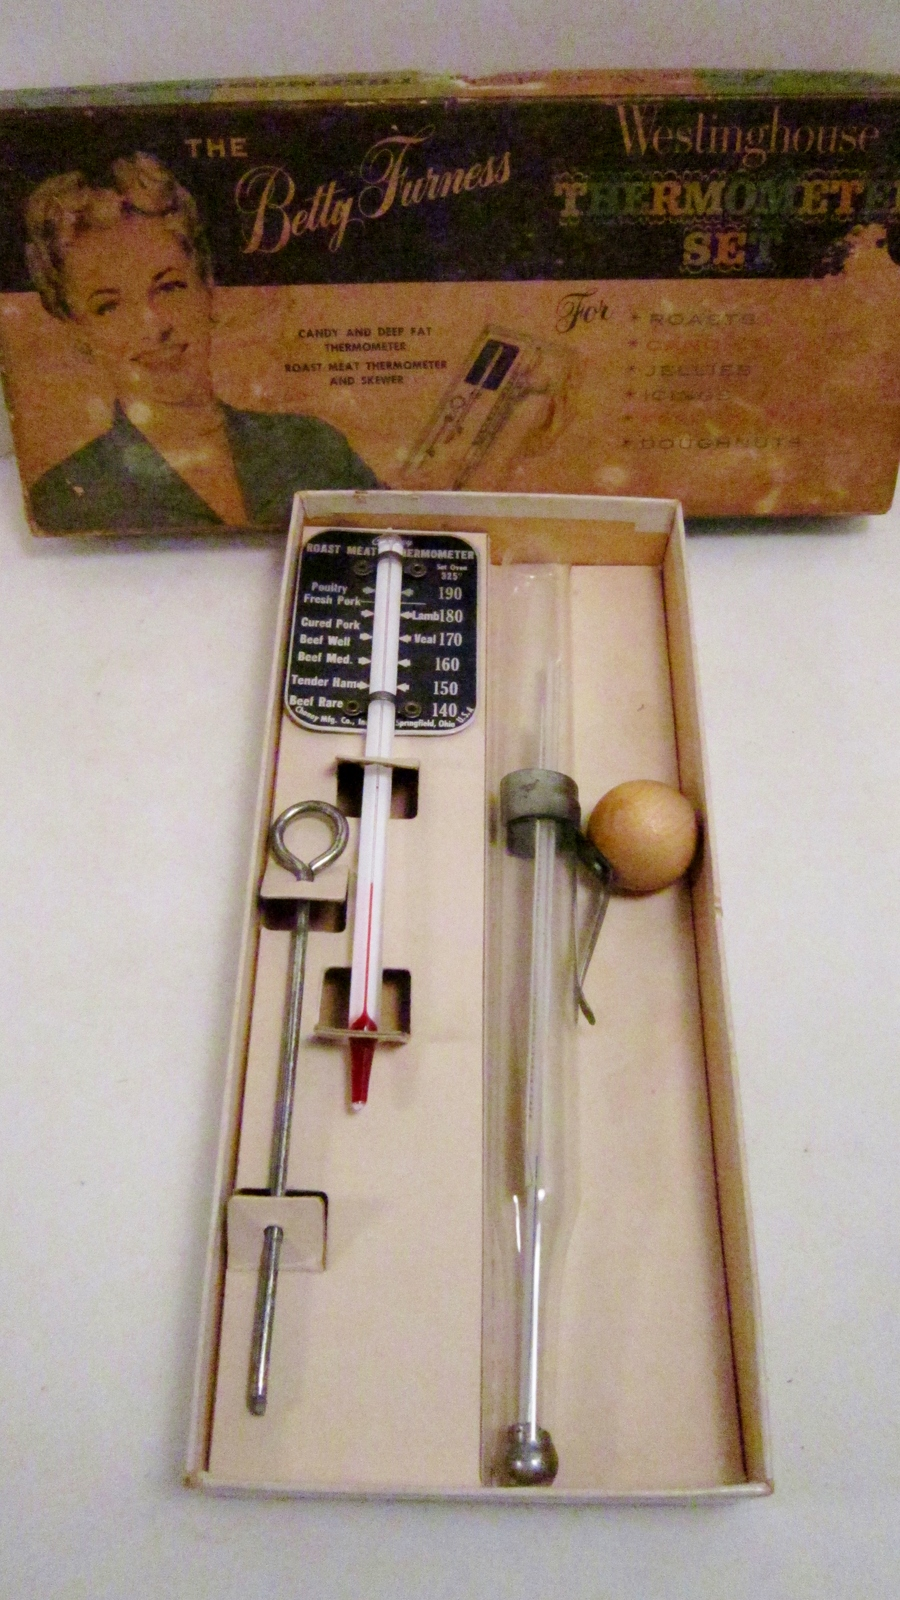 Chaney trutemp thermometer set 1950s betty furness westinghouse 01